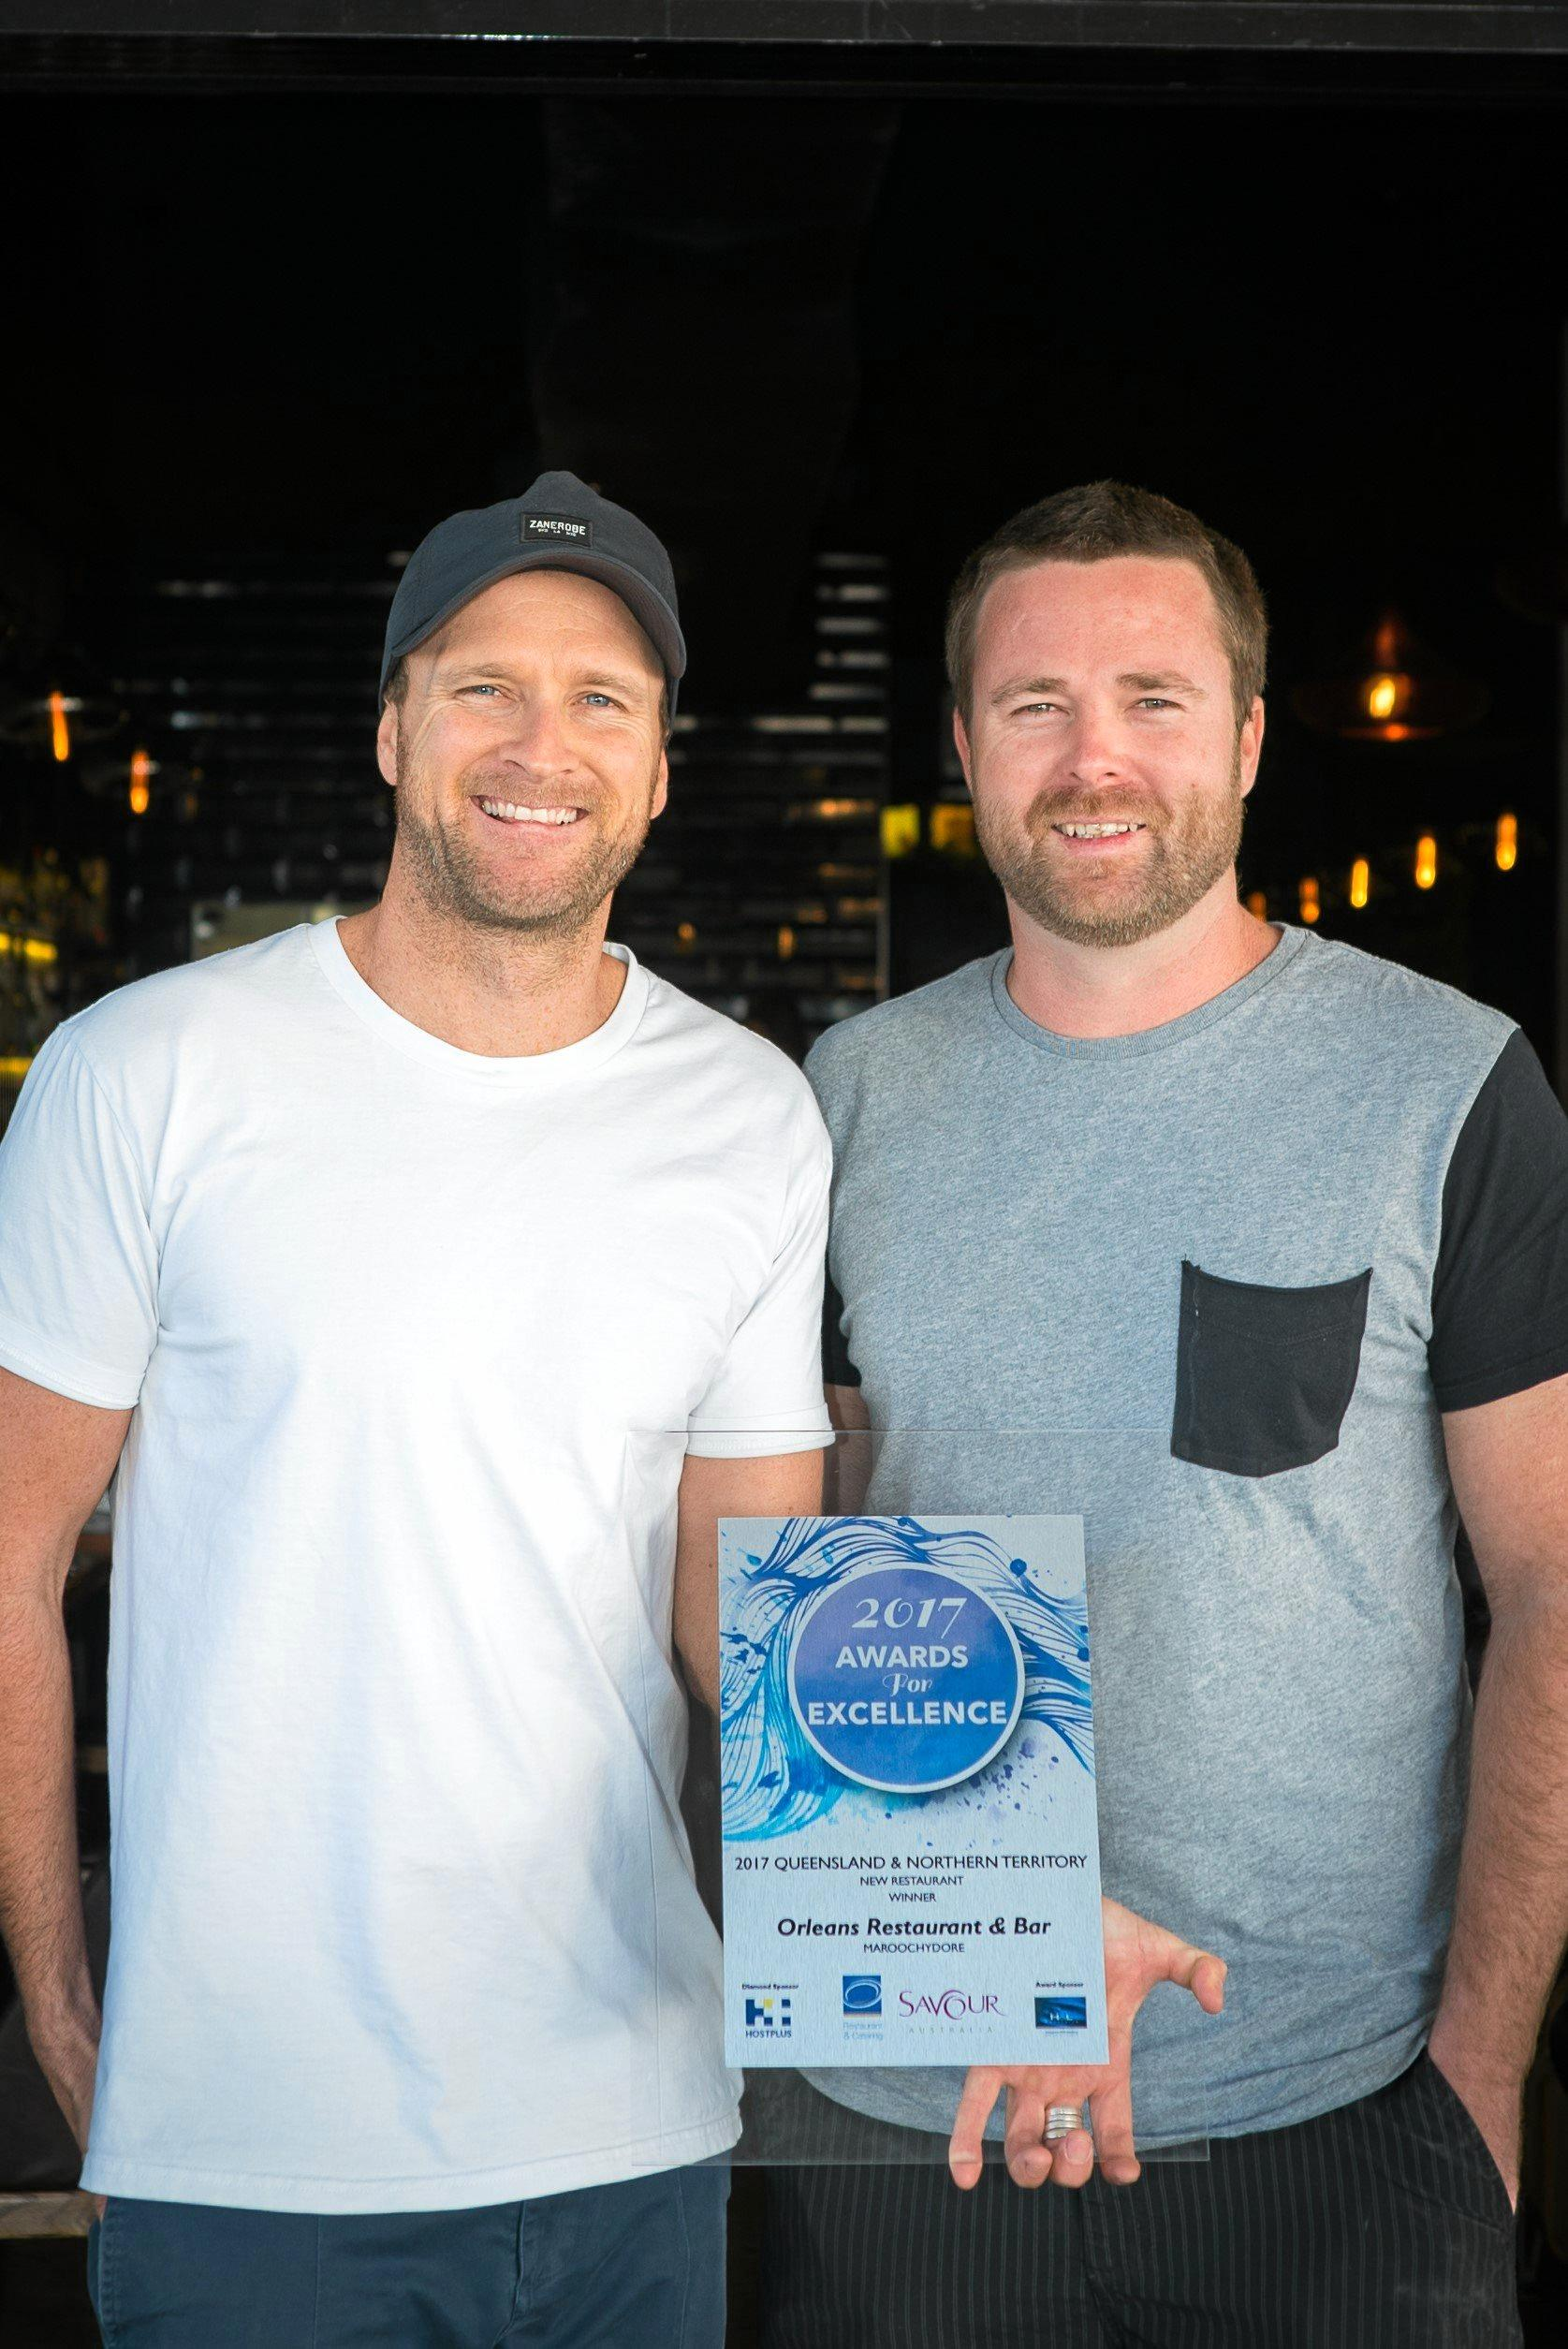 WINNERS: Orleans Restaurant and Bar owners Brendan Bryant and Liam Brown and the team are beaming after winning best new restaurant in Queensland and Northern Territory.